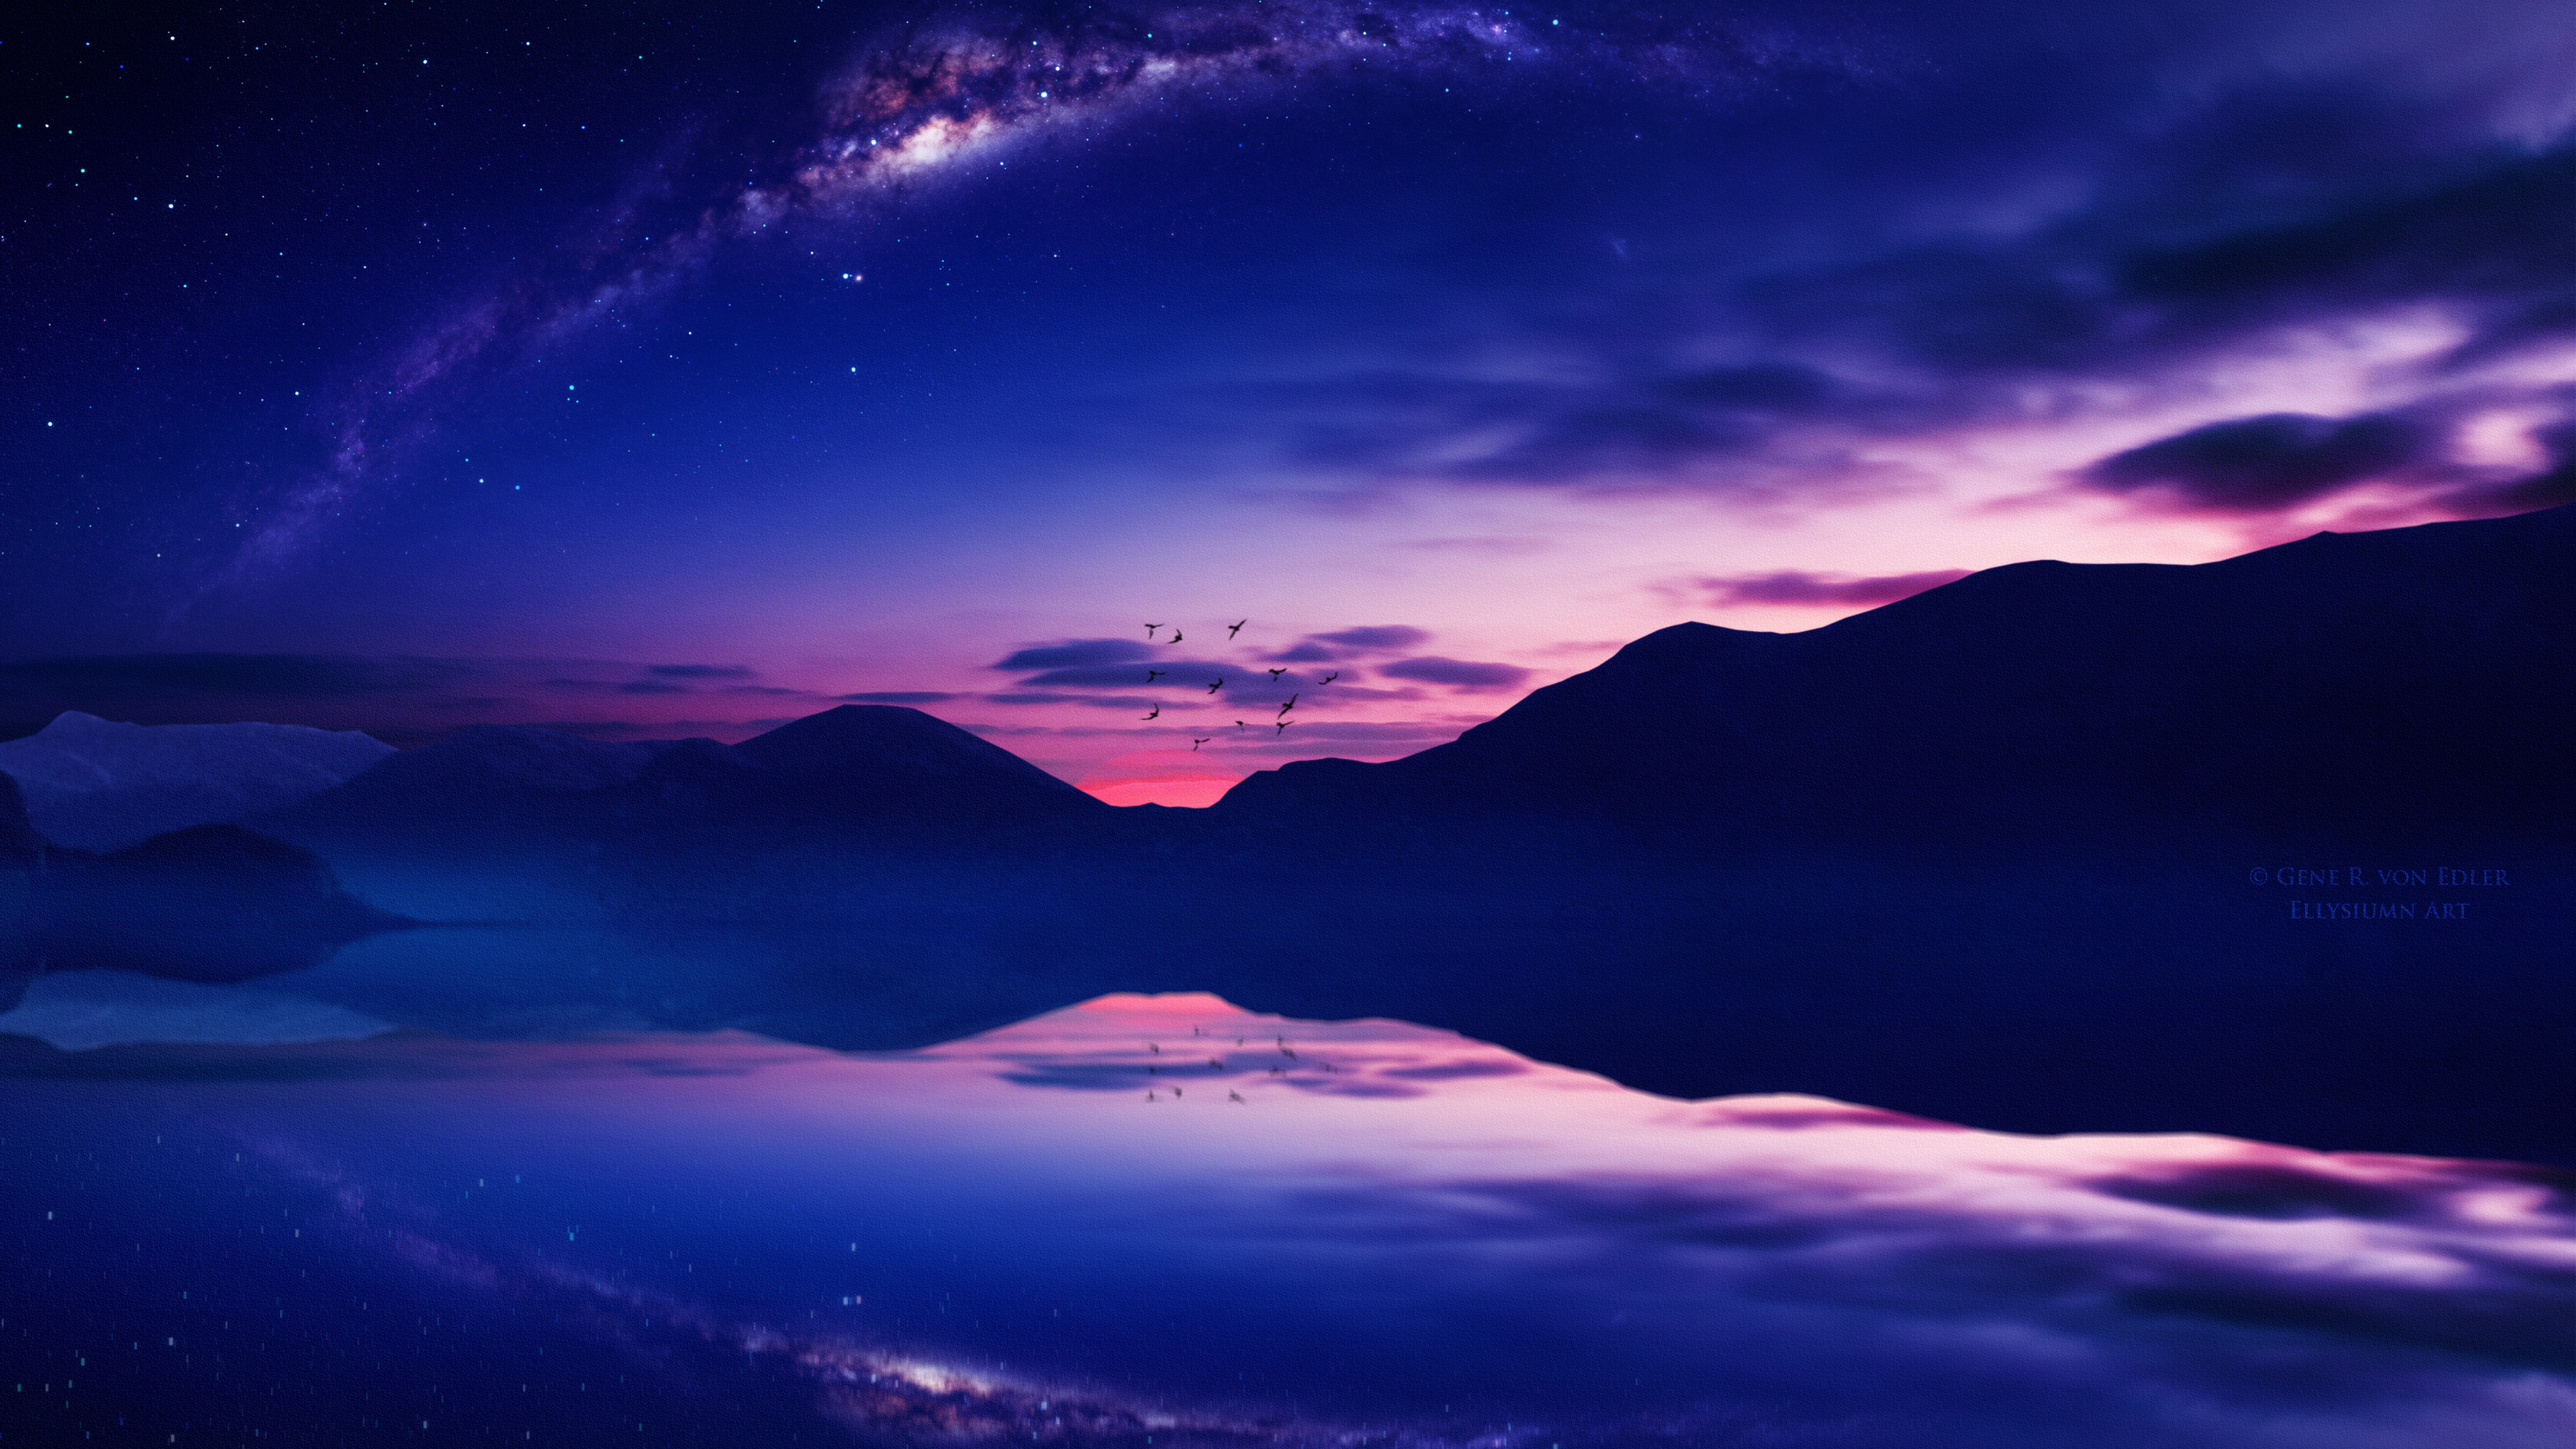 Starry Twilight 4k, HD Photography, 4k Wallpapers, Images ...